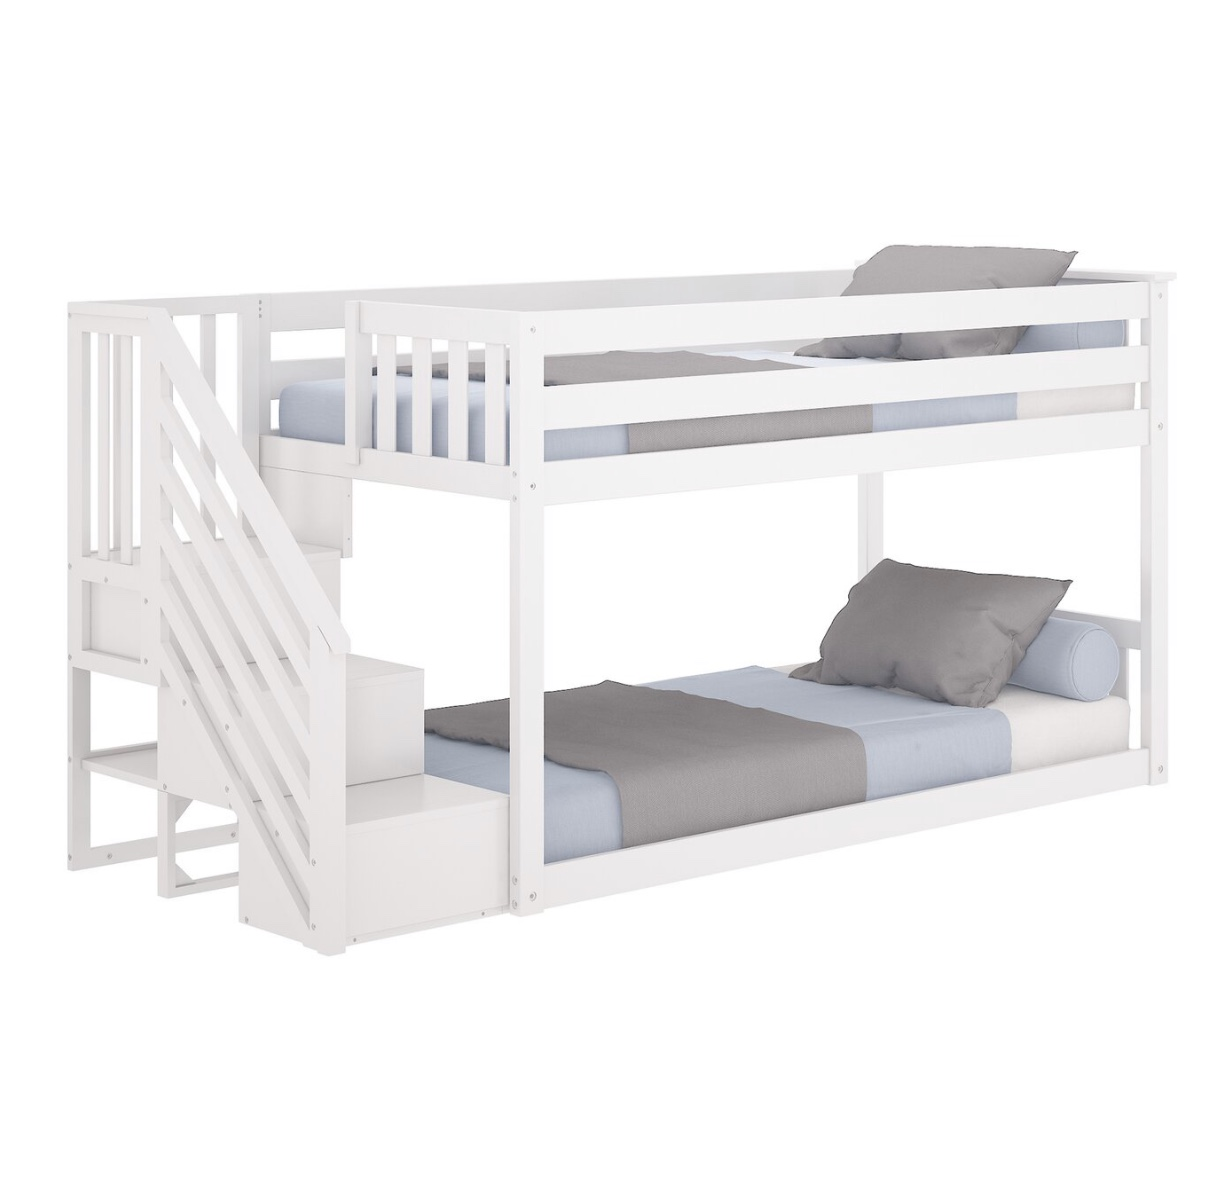 Picture of: No 1539 Hot Selling Kids Bedroom Furniture Solid Pine Wood Twin Bunk Bed With Storage Stairs Buy Wooden Furniture Kids Bunk Bed Solid Pine Wood Product On Alibaba Com